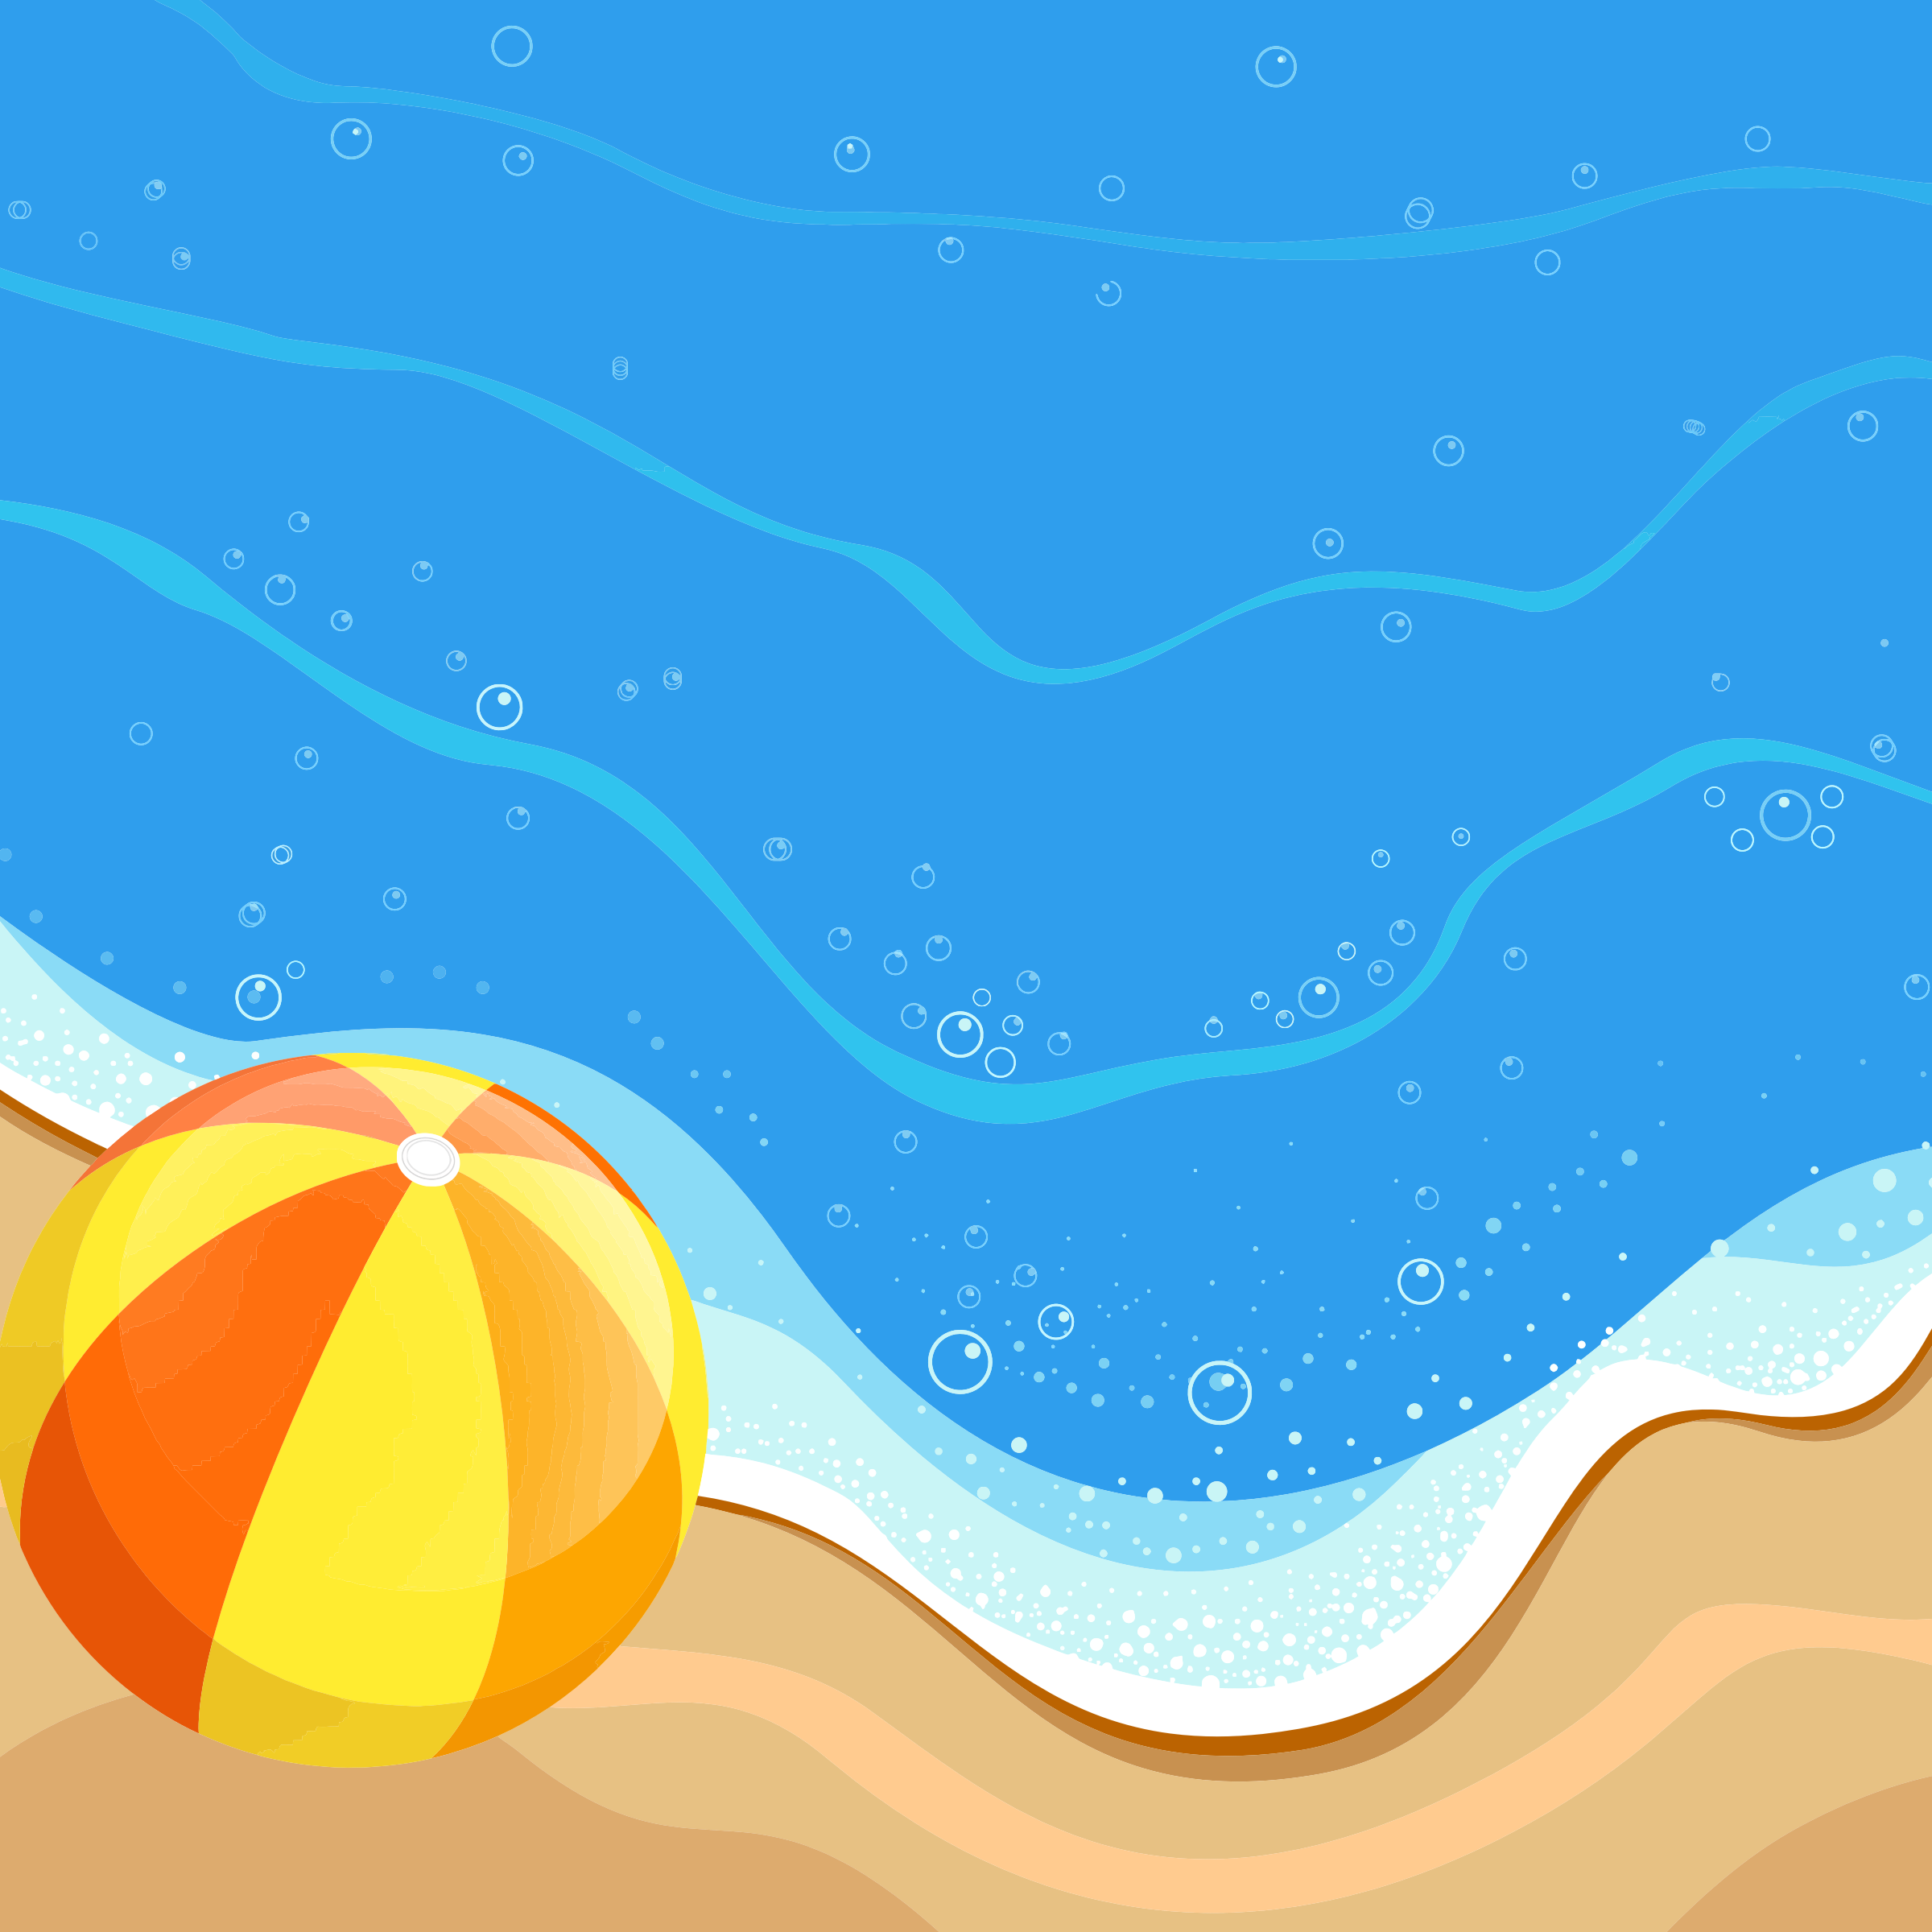 Beach ball At The Beach - Daily Sketch 31 by GDJ